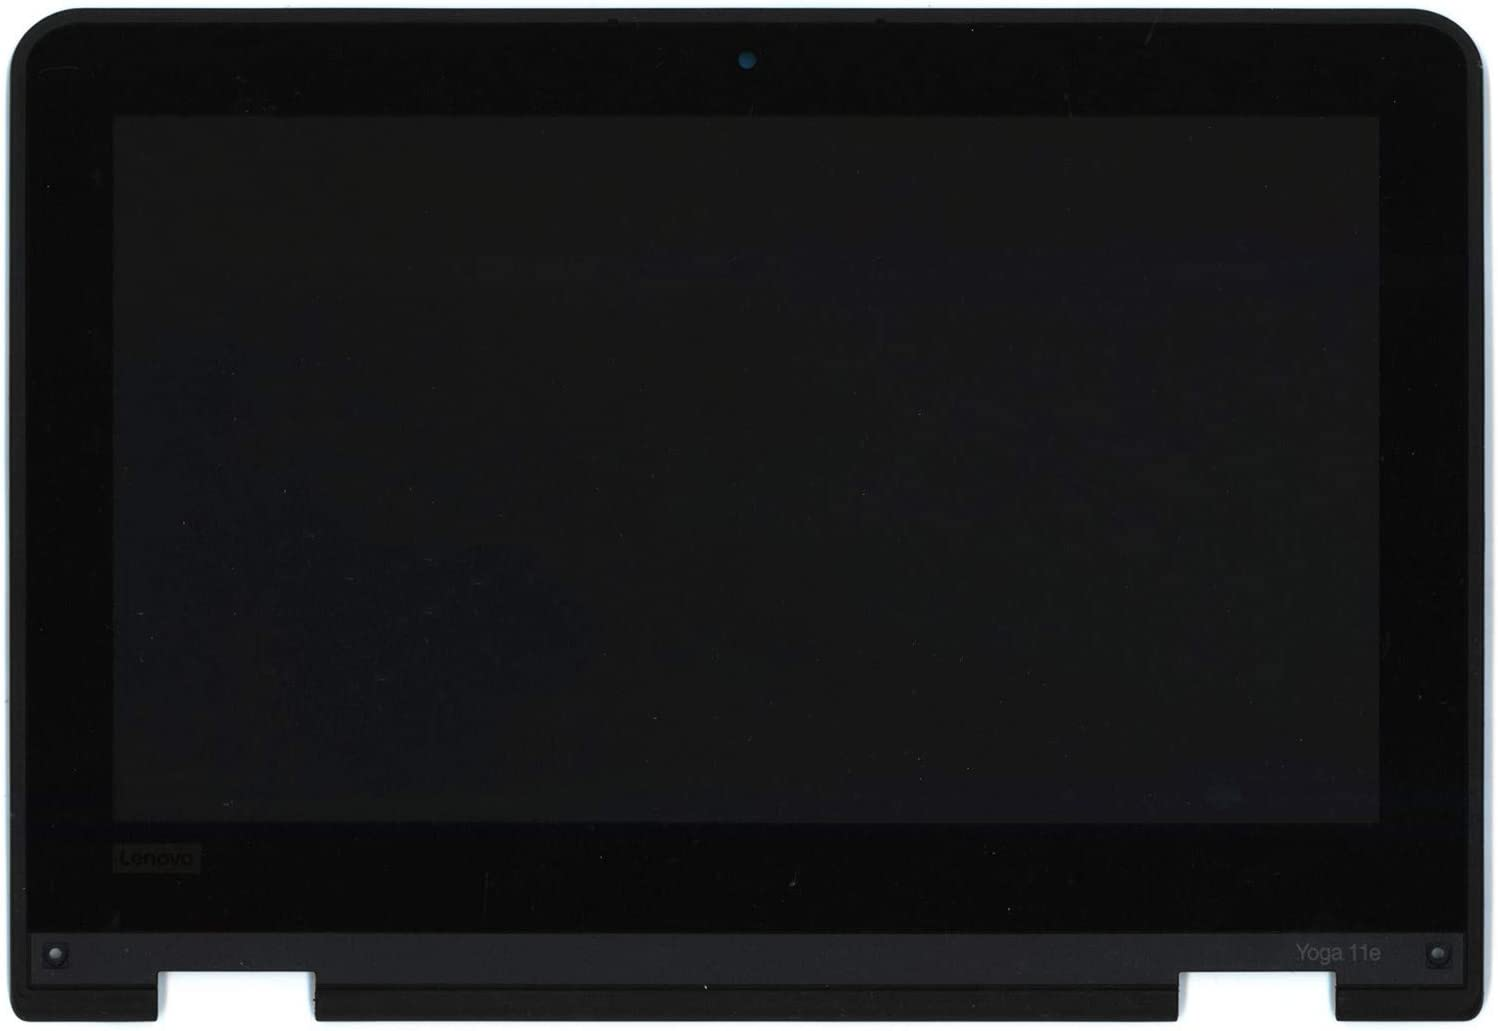 """For Lenovo 11.6"""" HD 1366x768 IPS LCD Panel LED Touch Screen Display with Bezel Frame Assembly SD10M34106 Thinkpad Yoga 11e 5th Gen. Type 20LM FRU: 01LW707"""